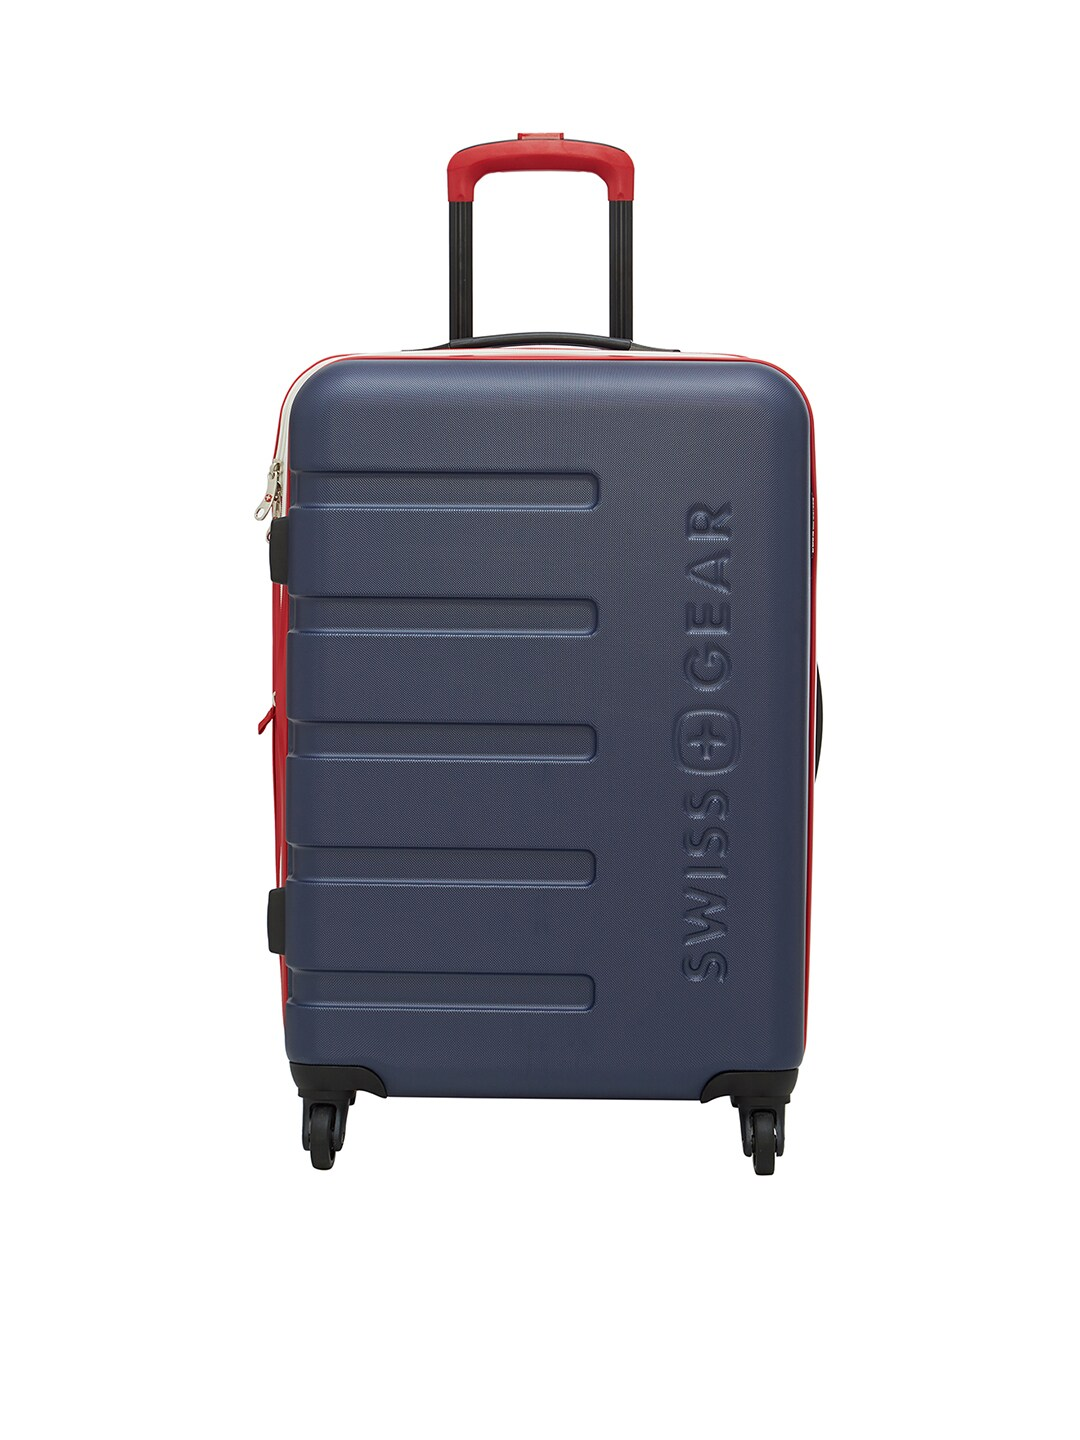 Swiss Gear Bags - Buy Swiss Gear Bags online in India a64bc1d5b8a86